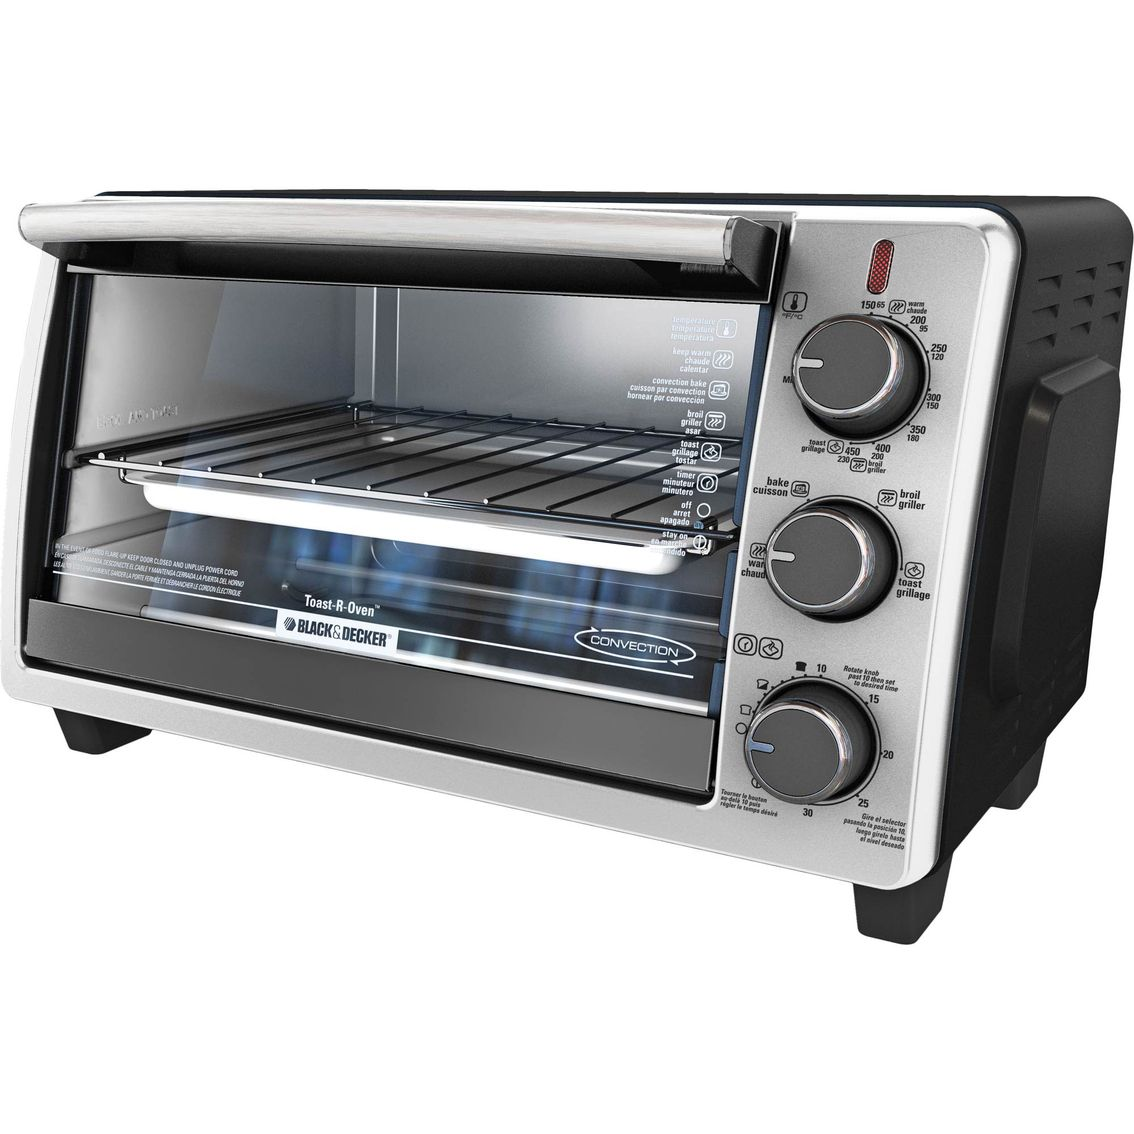 Breakfast, lunch, dinner or snacks, this versatile toaster oven ...